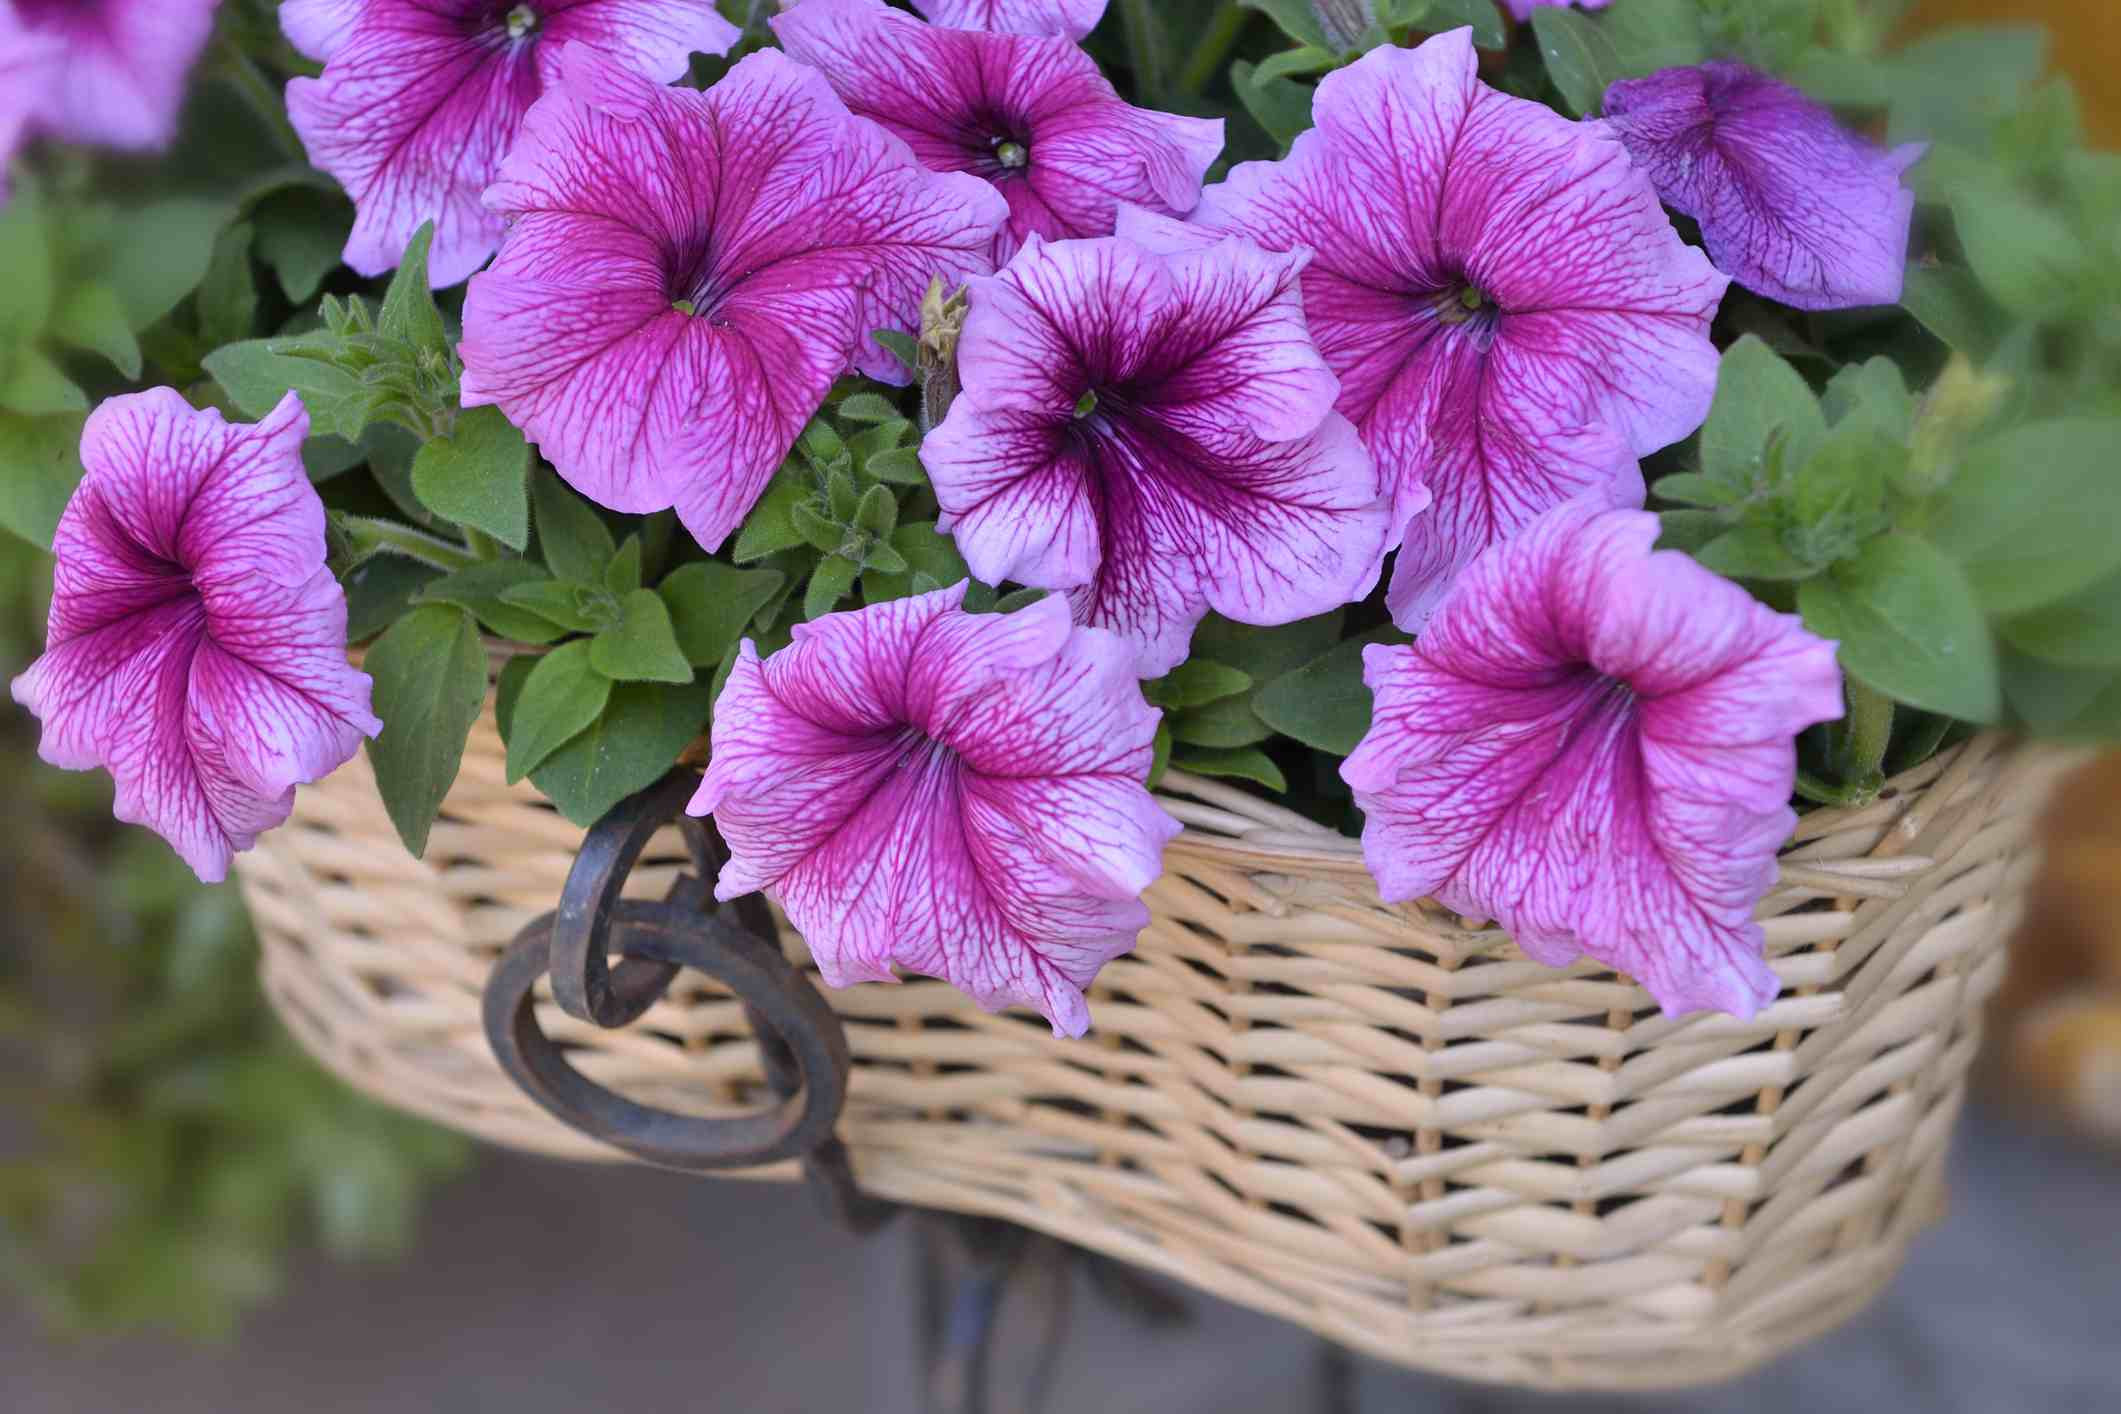 Petunia flowers Getty 588b81a15f9b5874ee d